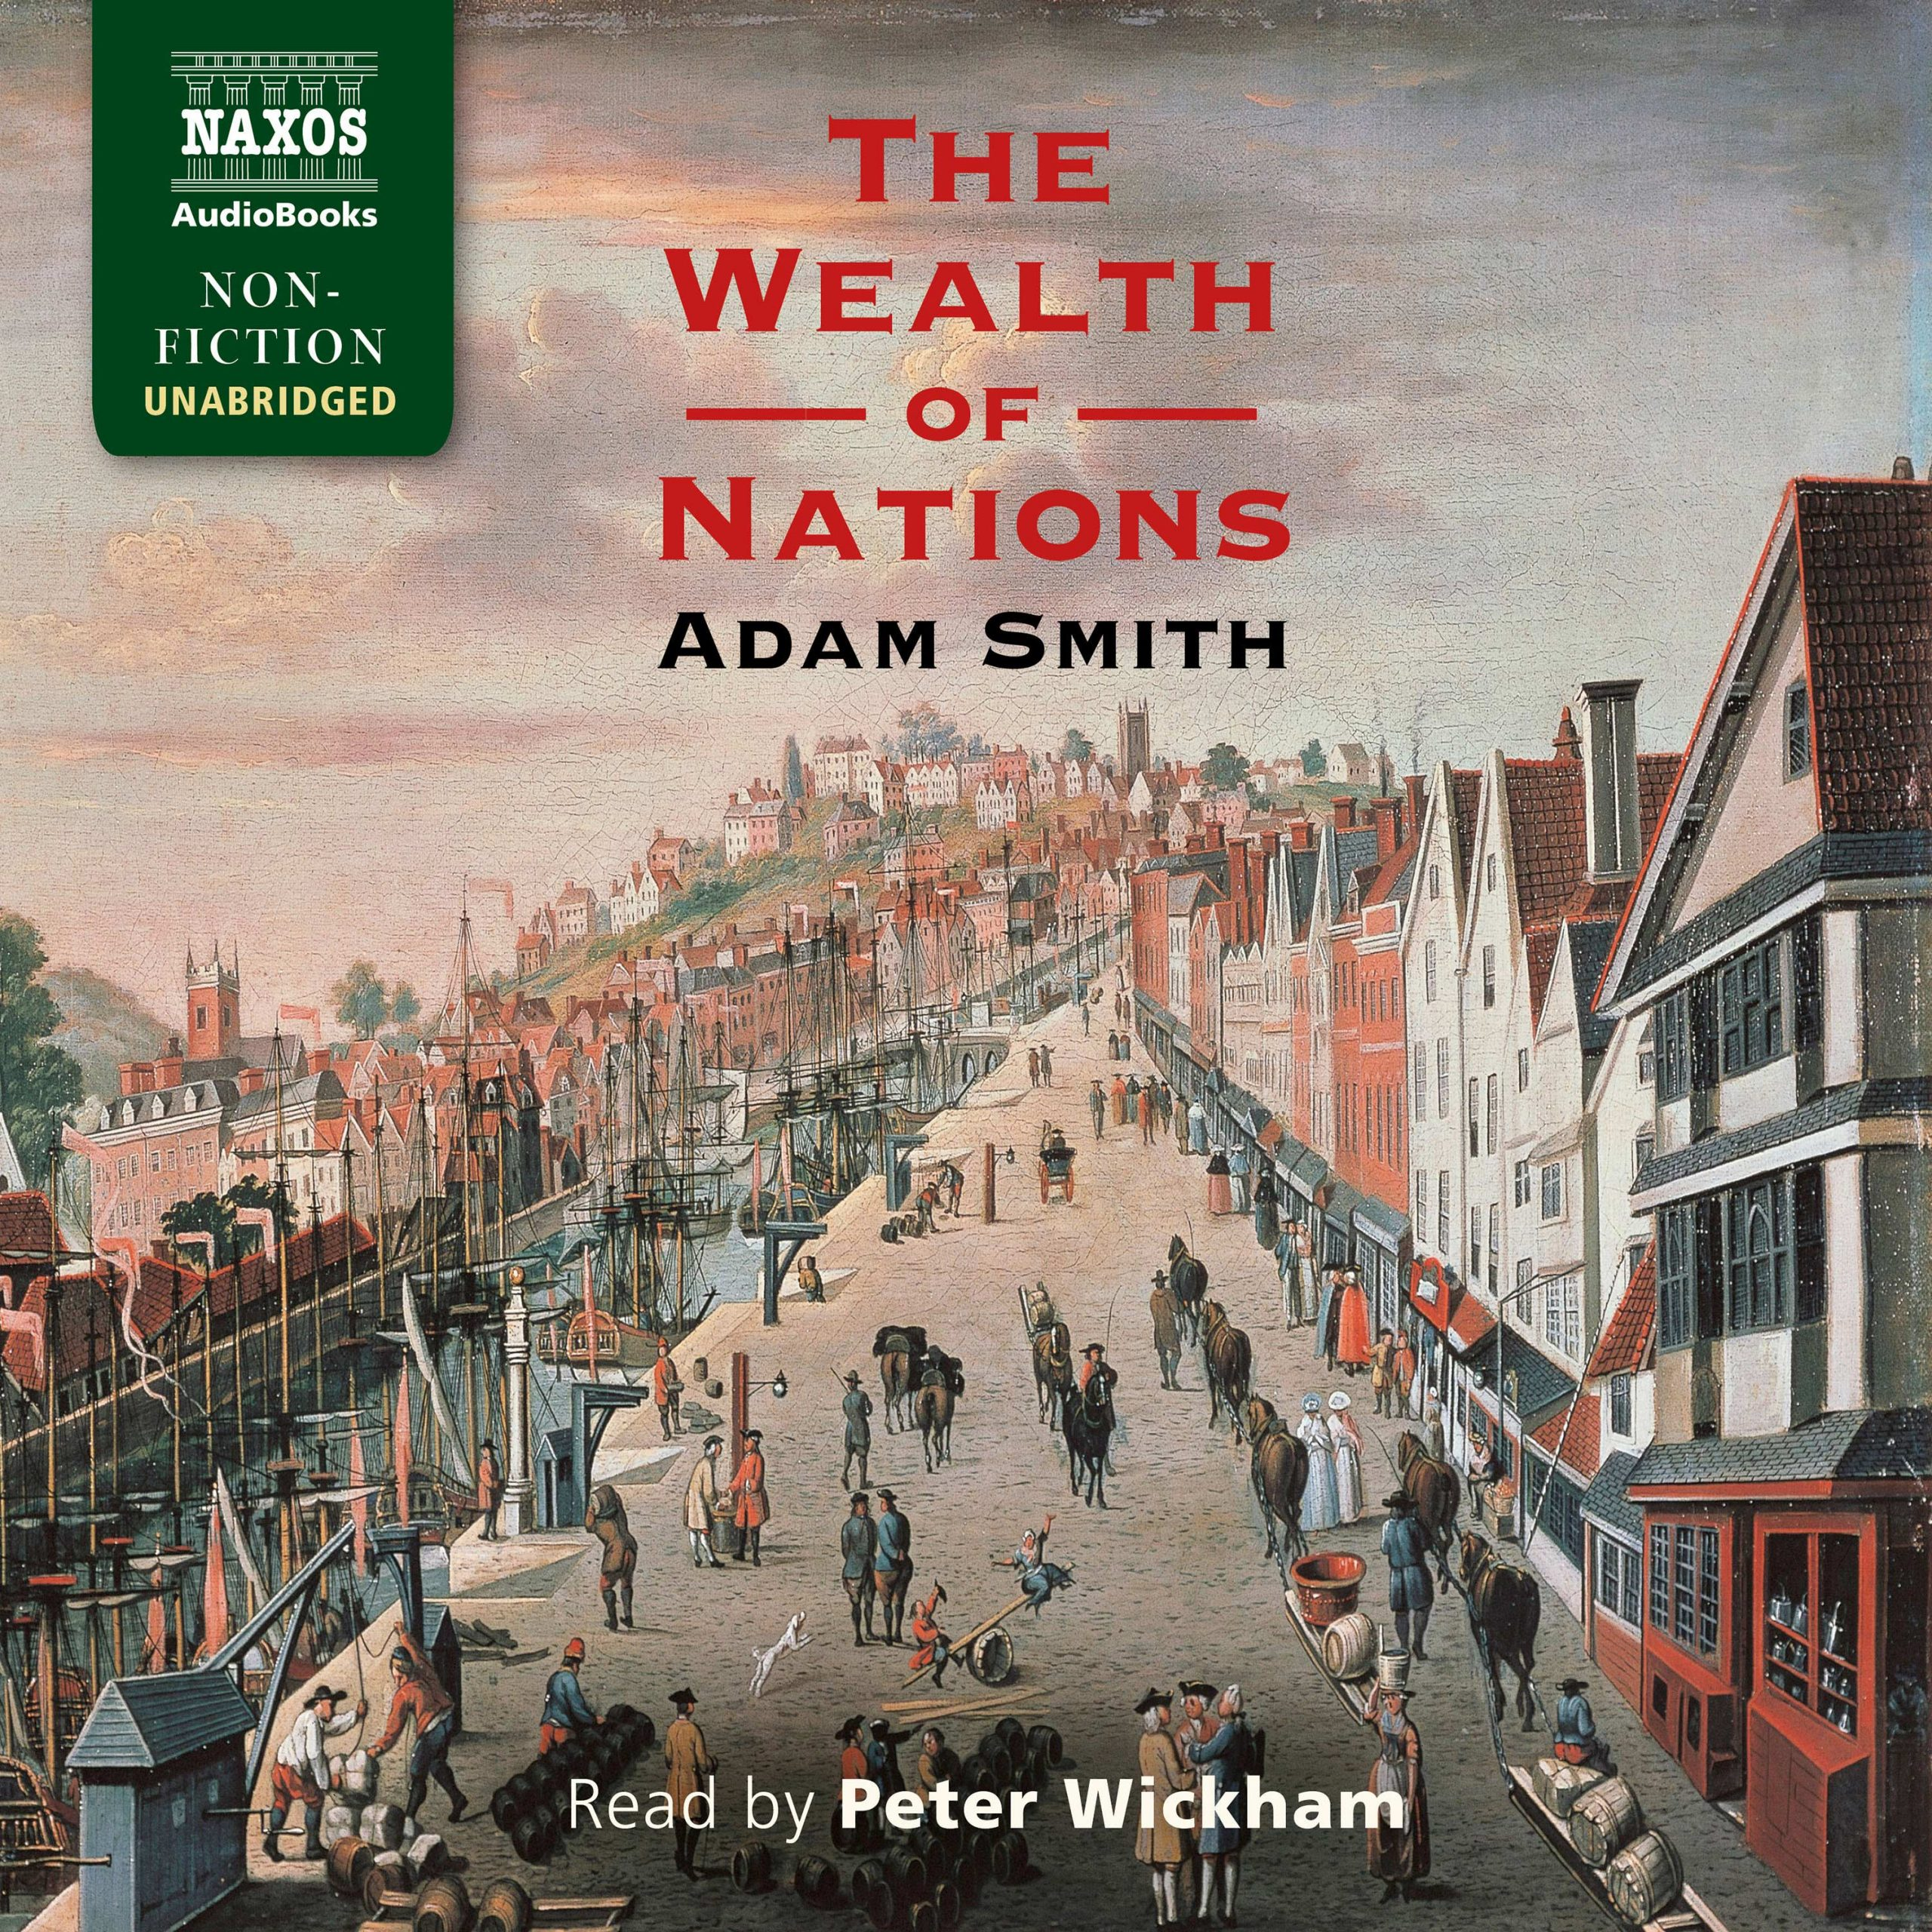 The Wealth of Nations (unabridged)